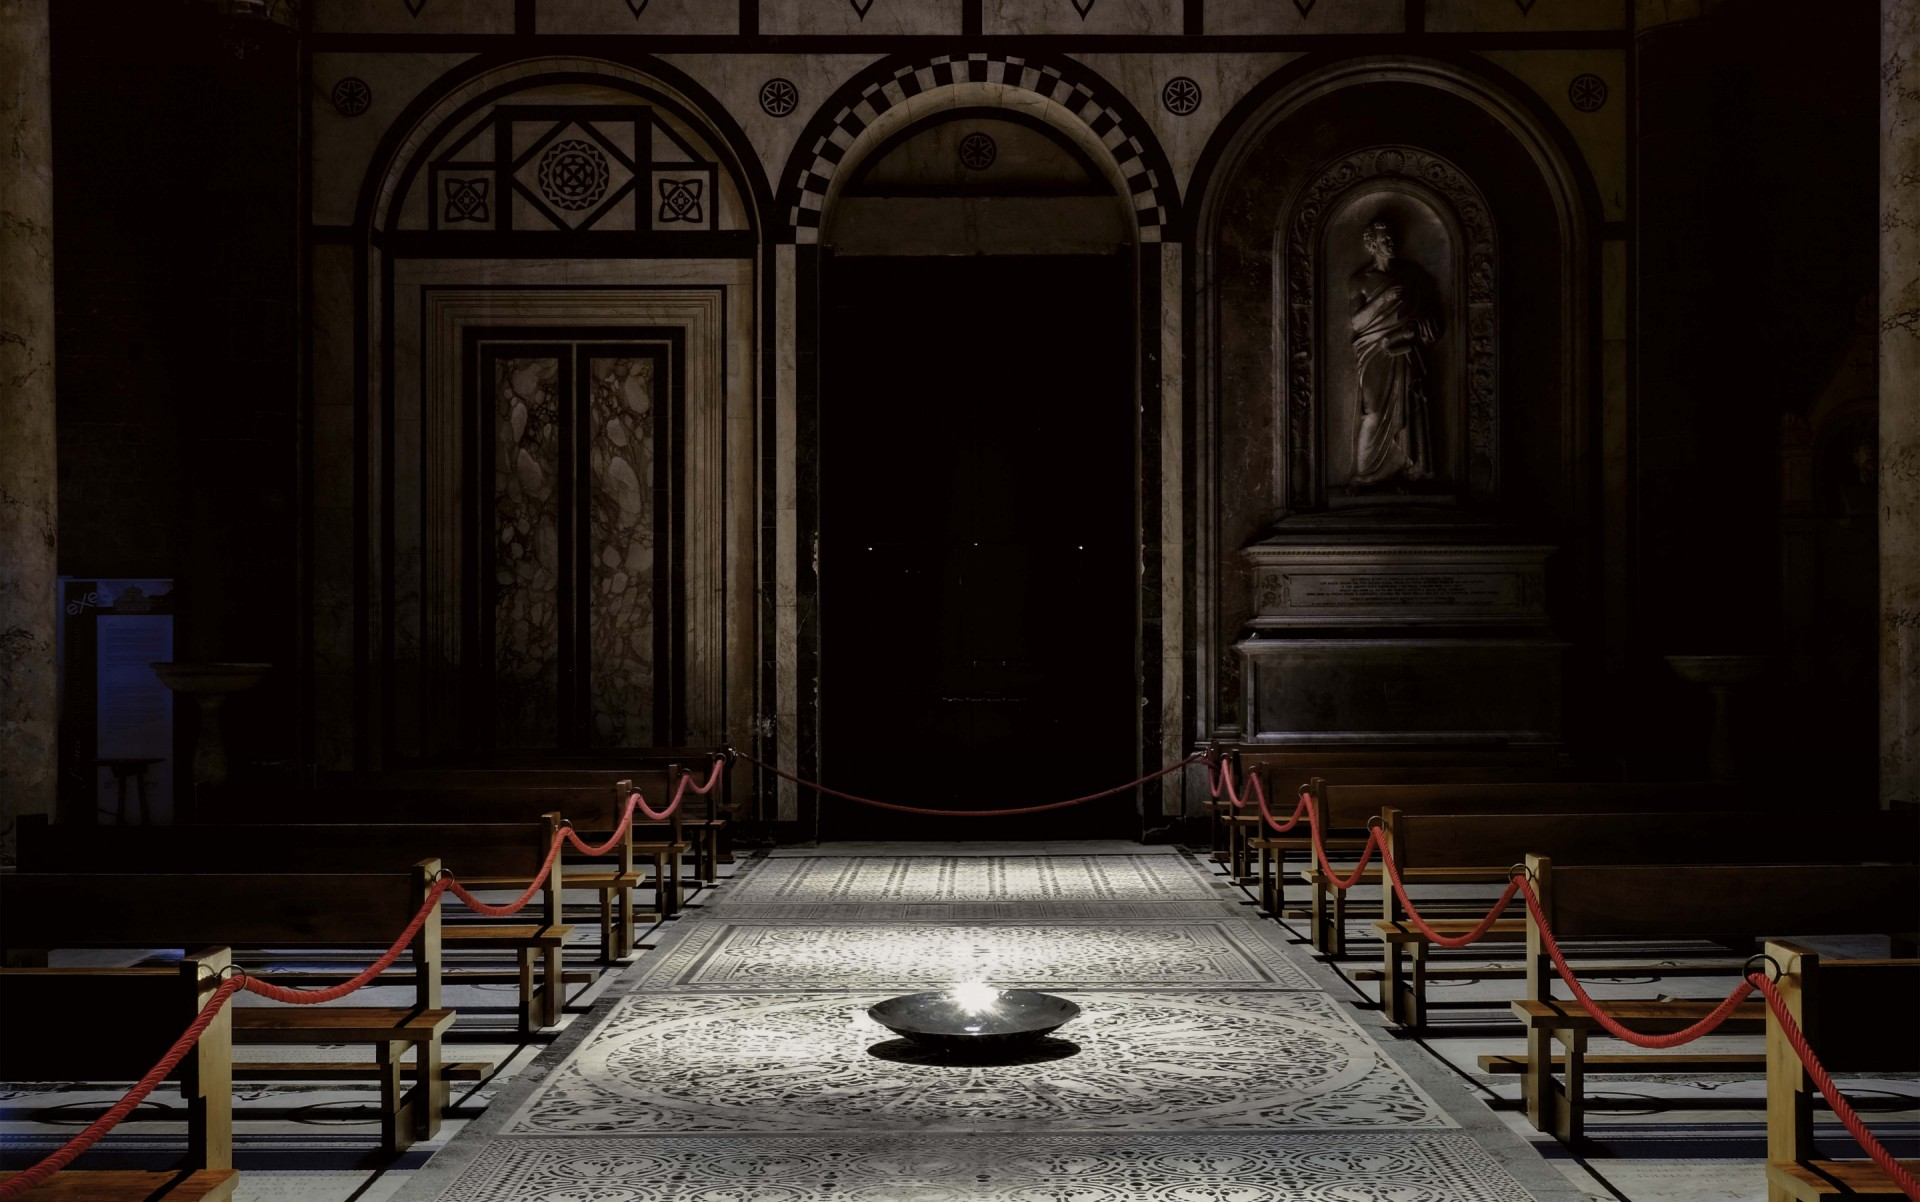 The light precisely strikes the architectural elements and frescoes without spilling onto nearby surfaces.  – Matteo Bencini - Matteo Trentanove